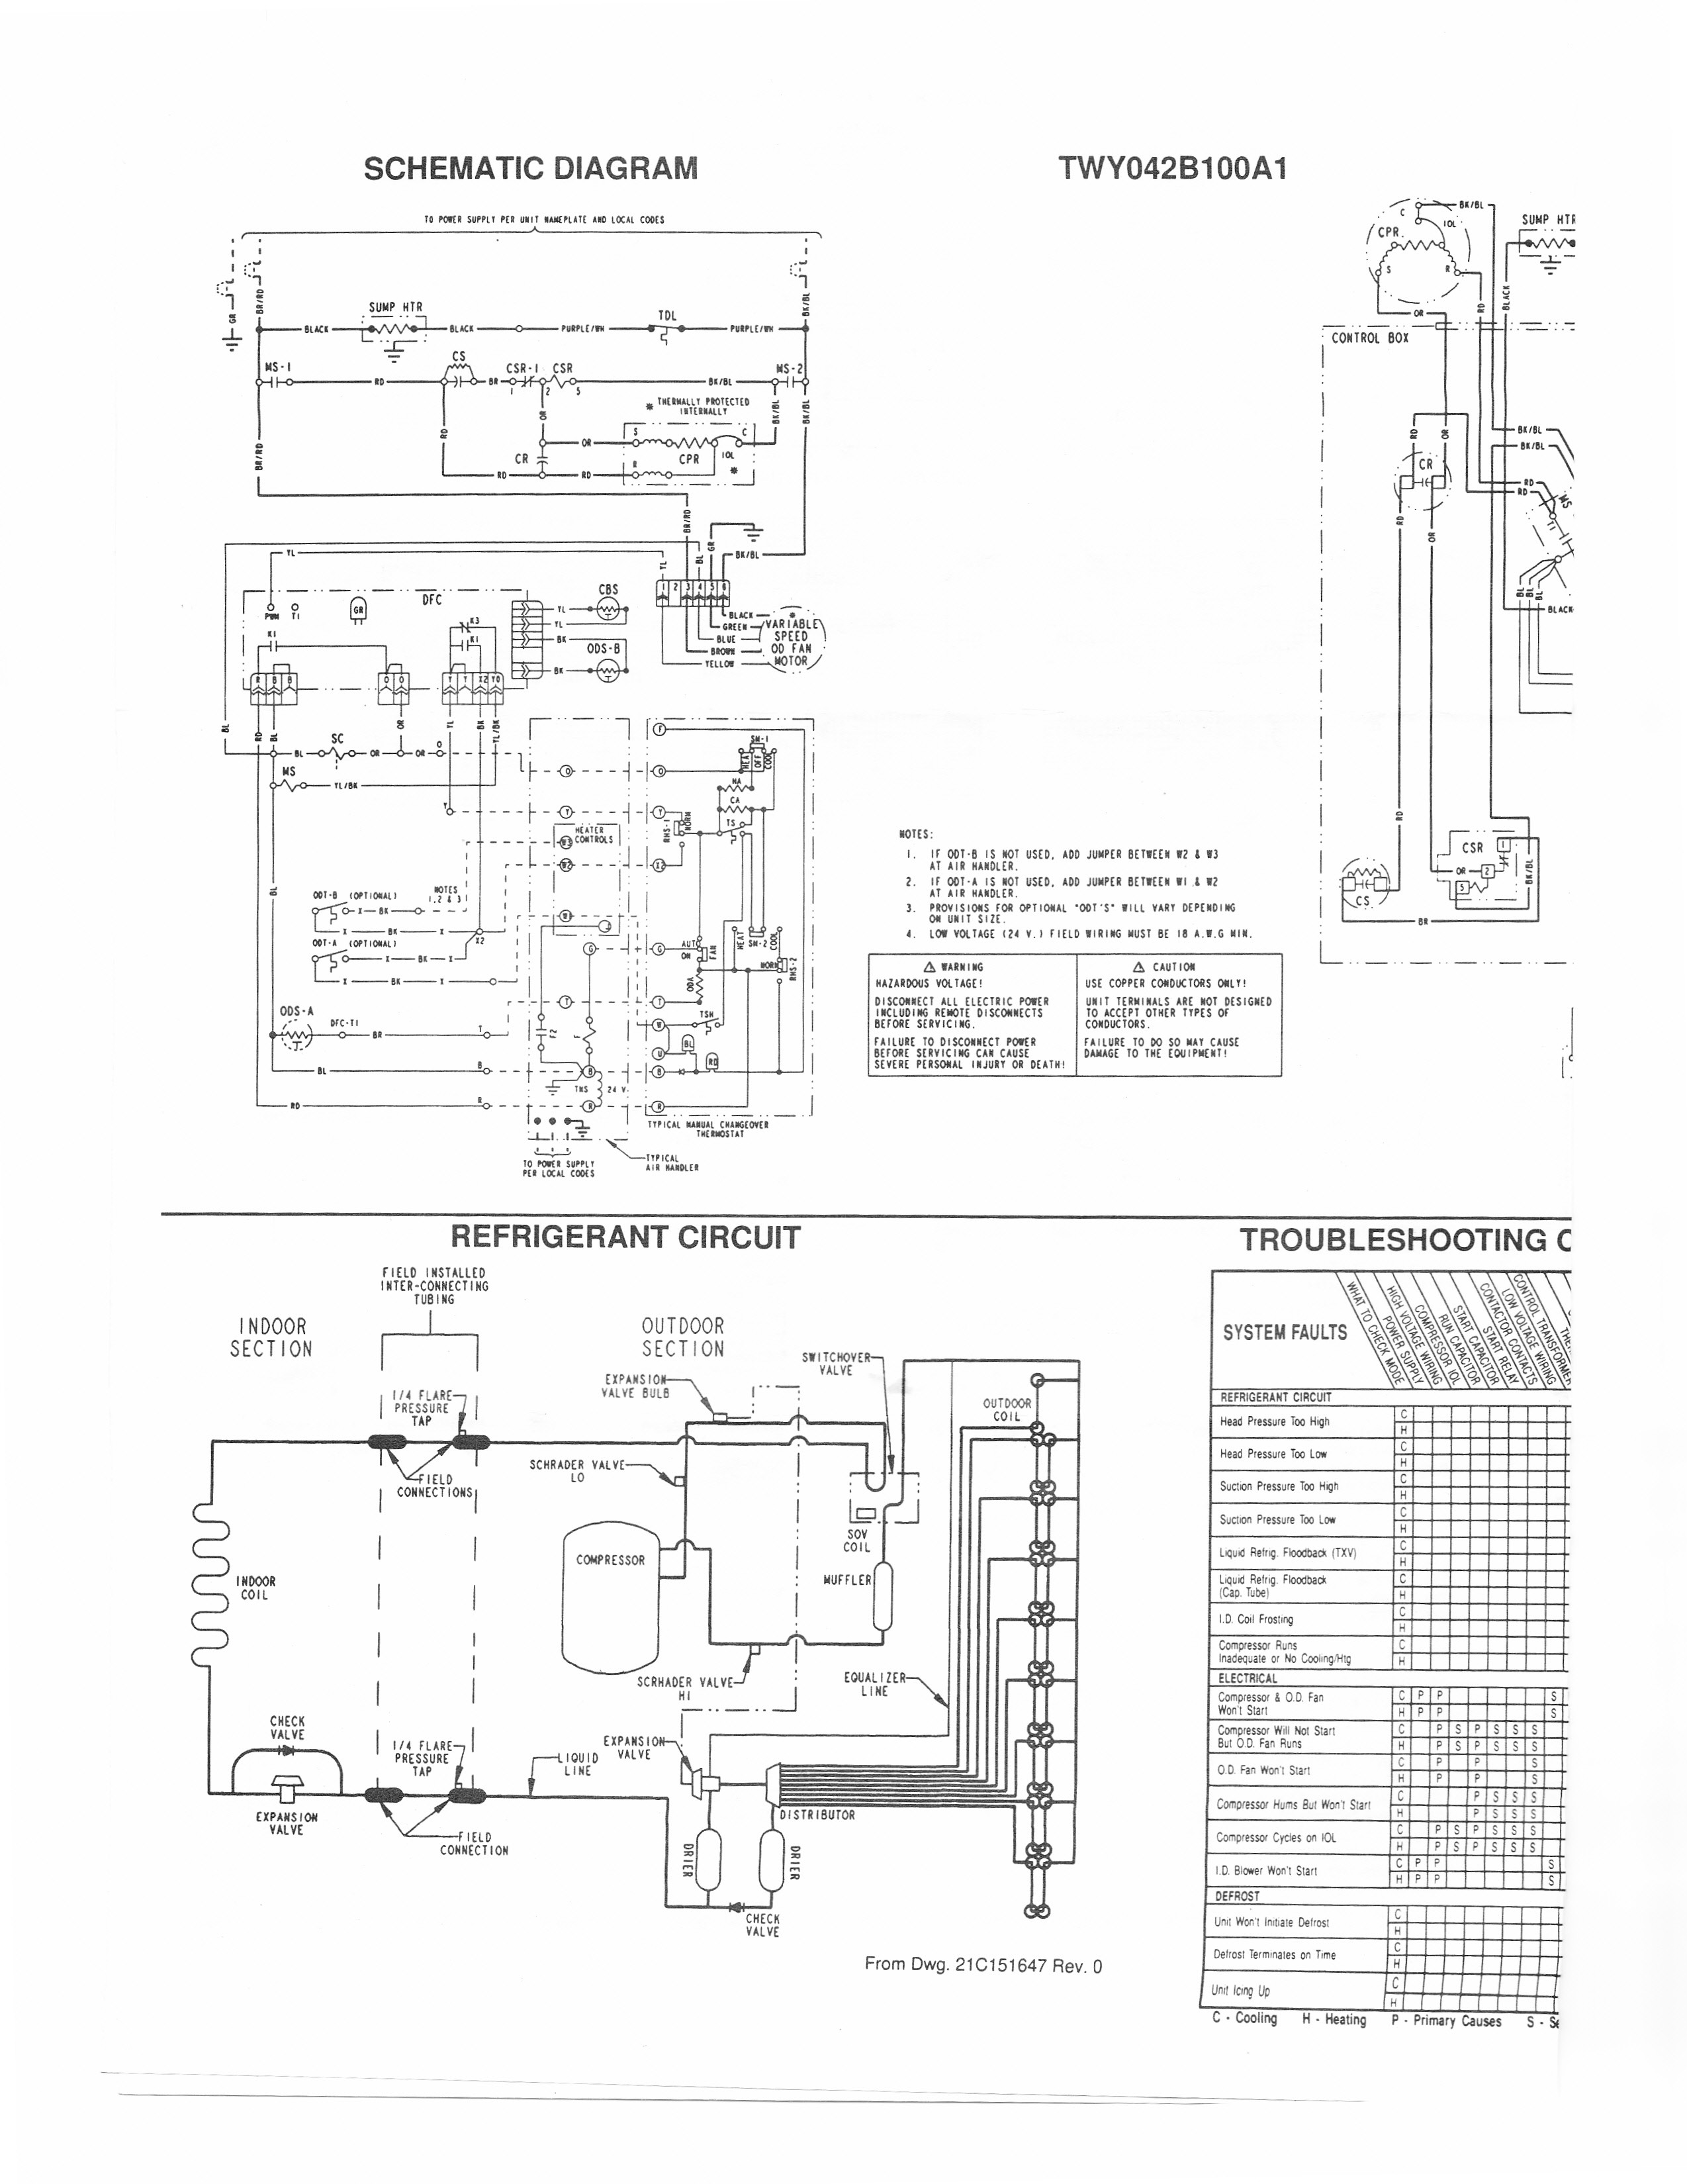 Collection Solutions Trane Air Handler Wiring Diagrams Wiring Diagrams Trane Heat Pump Electrical